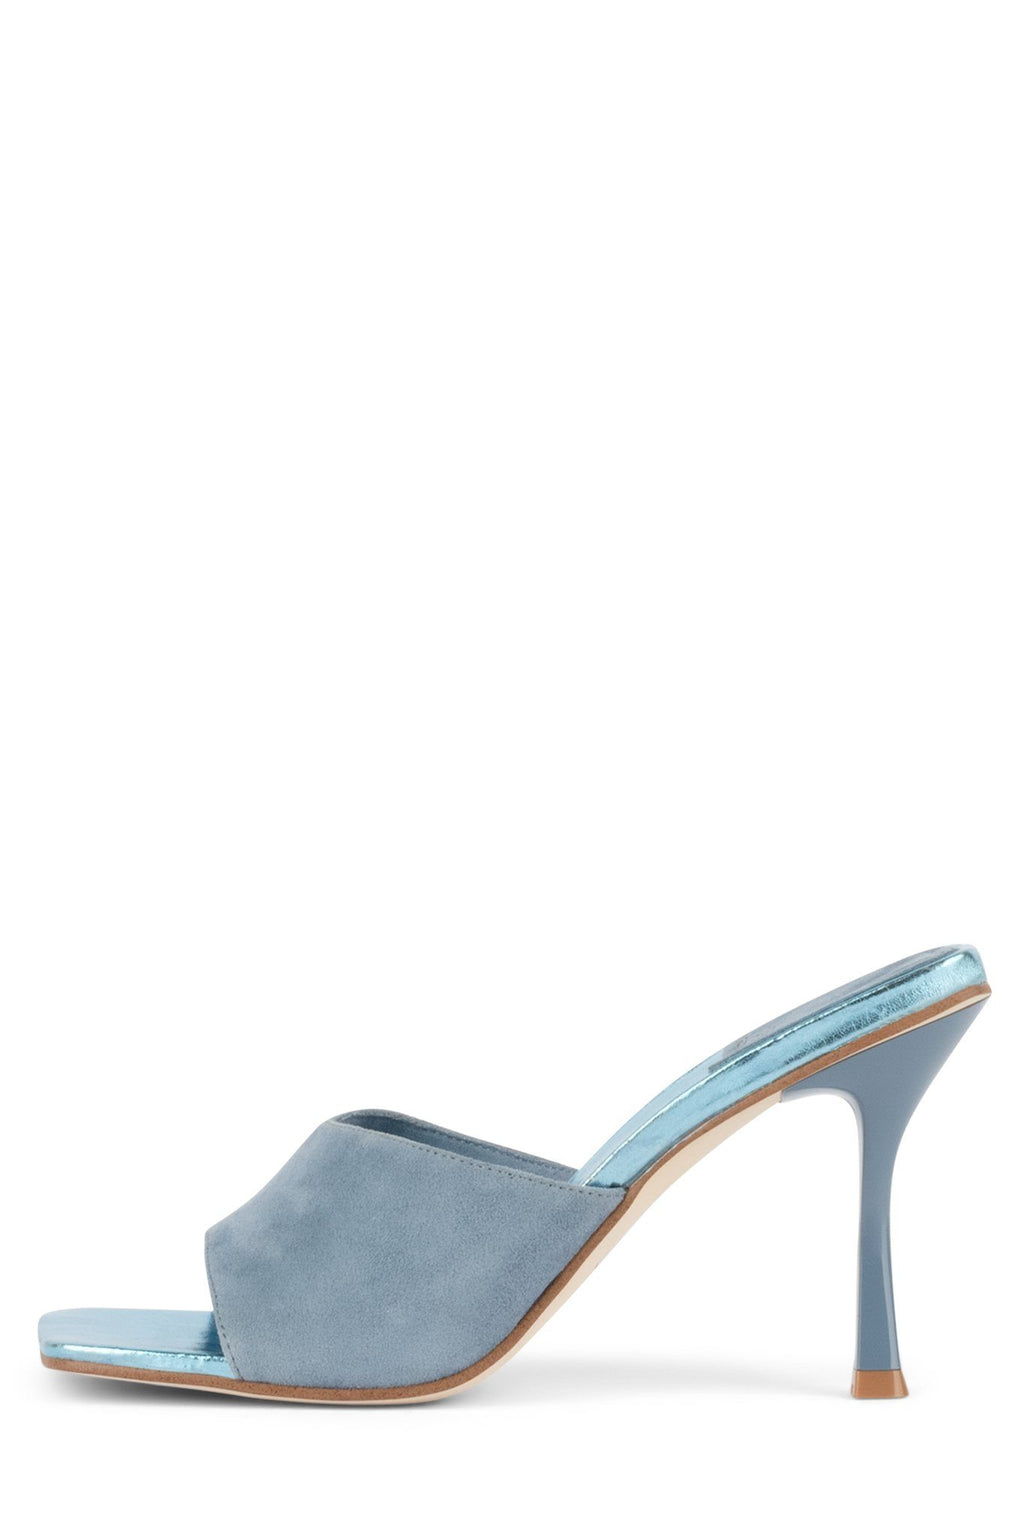 UTOPIC Heeled Sandal YYH Dusty Blue Suede Blue Metallic 6